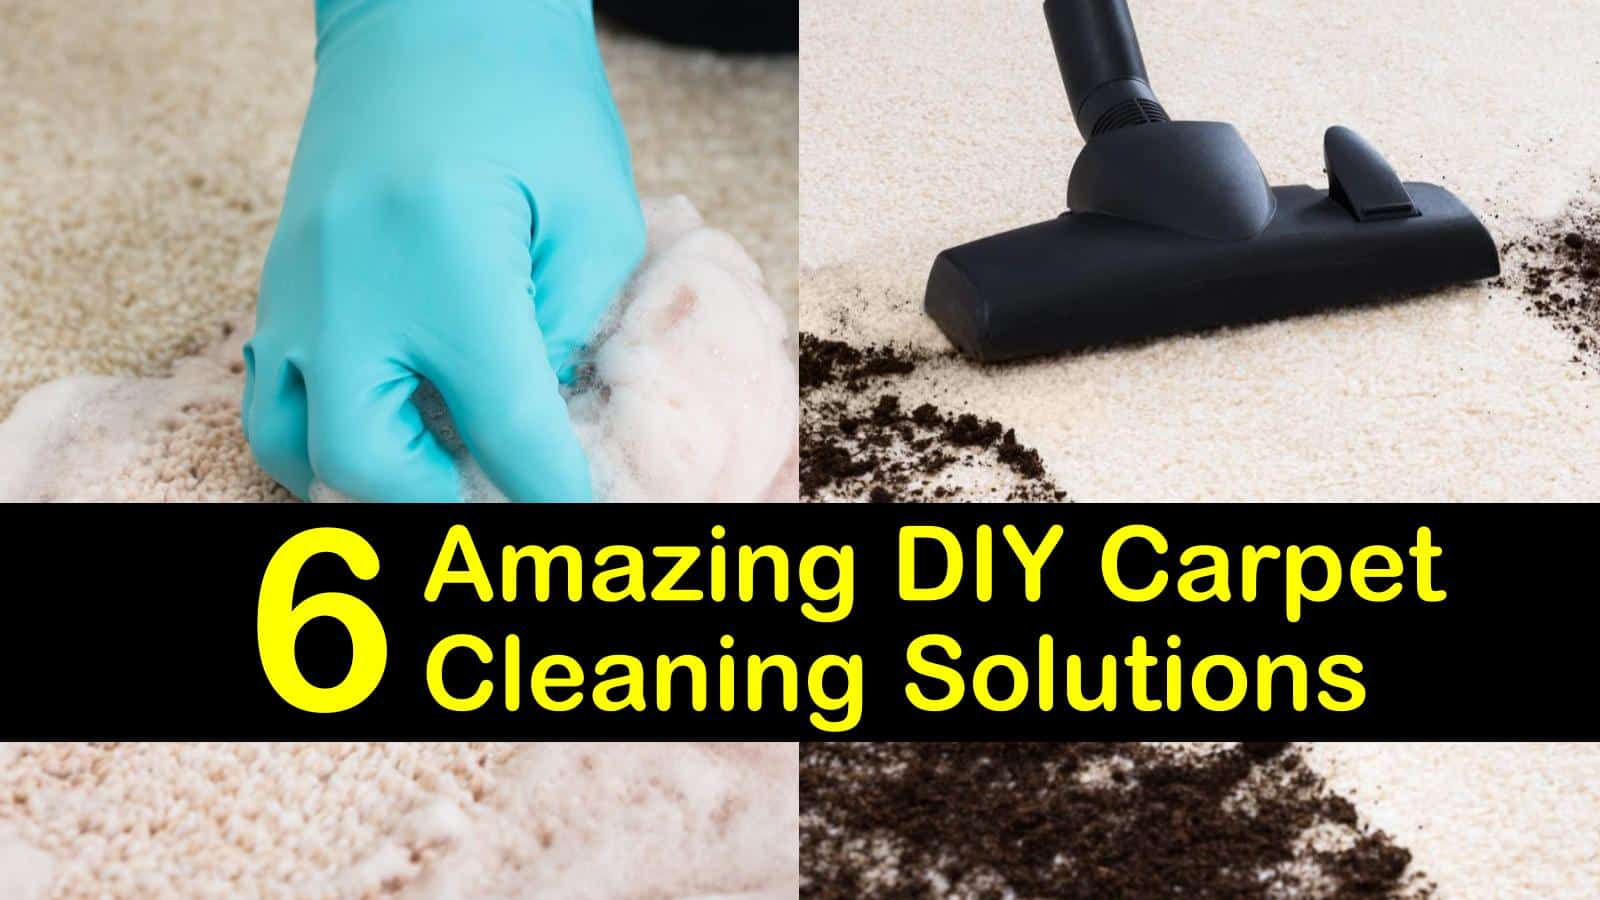 DIY carpet cleaning solution titimg